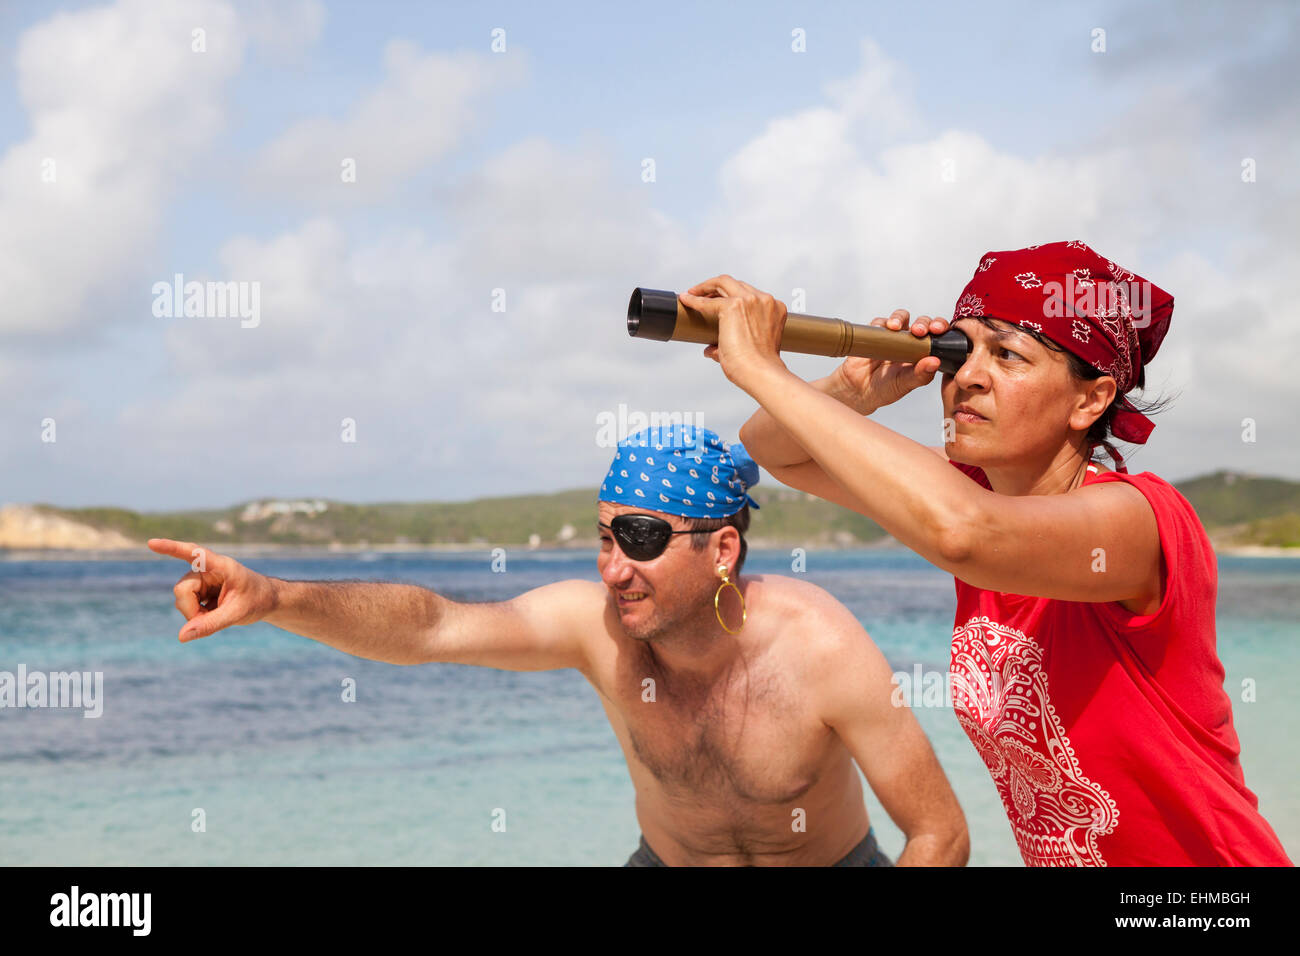 Man and woman dressed up as Pirates of the Caribbean, Nonsuch Bay, Green Island, Antigua, Antigua and Barbuda - Stock Image